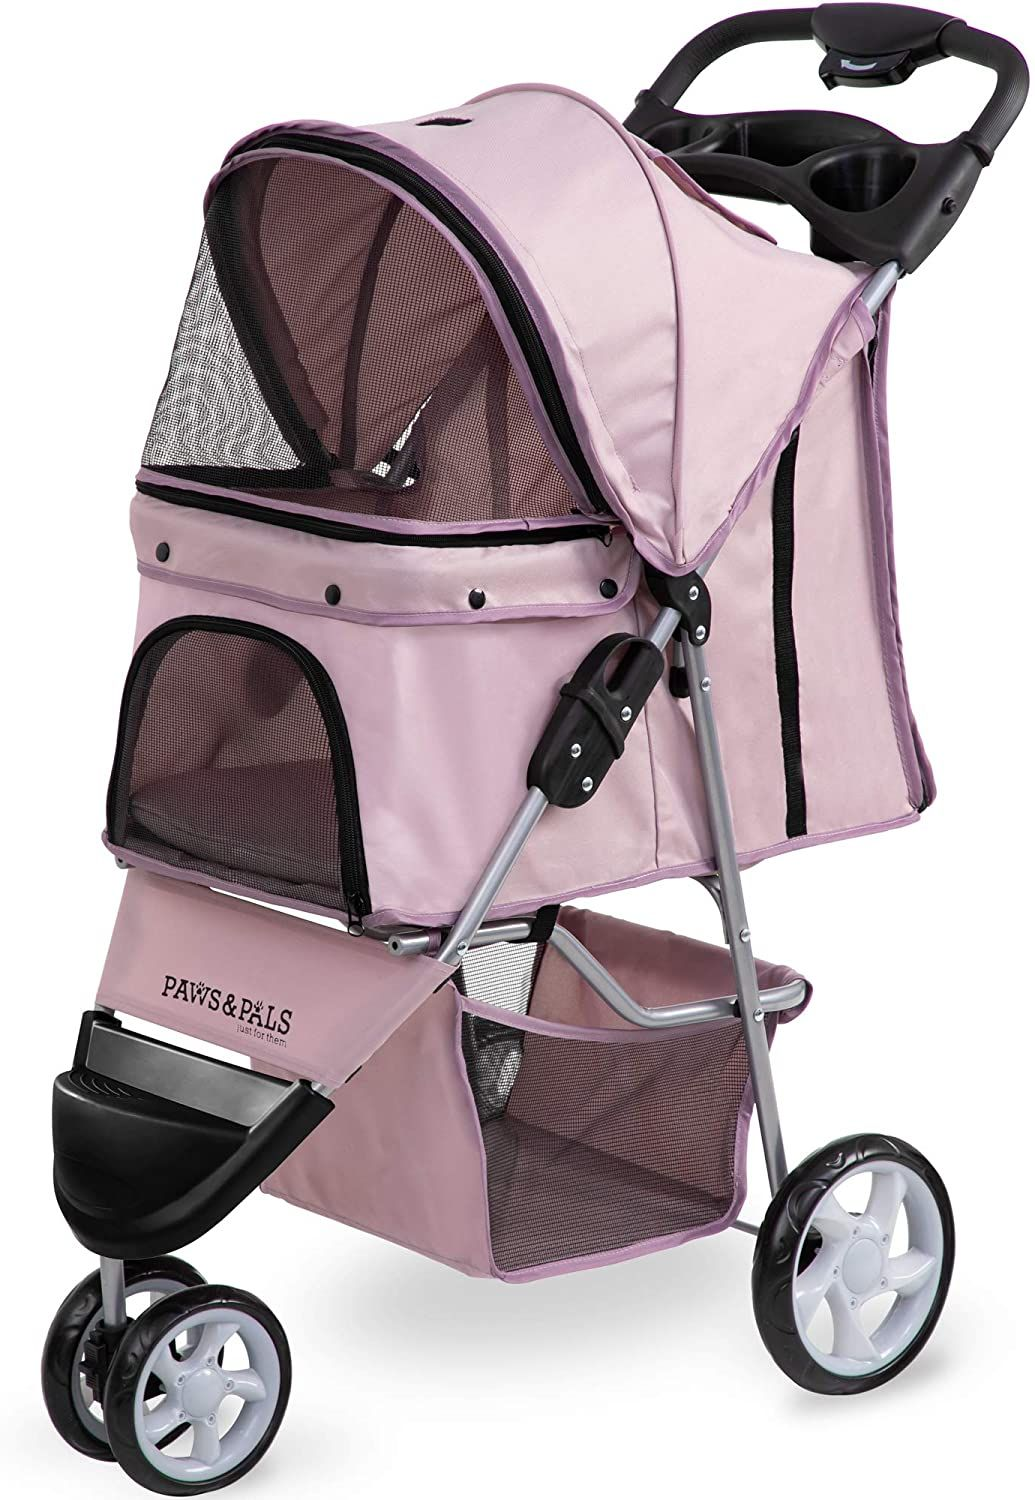 Paws & Pals Dog Stroller Pet Strollers for